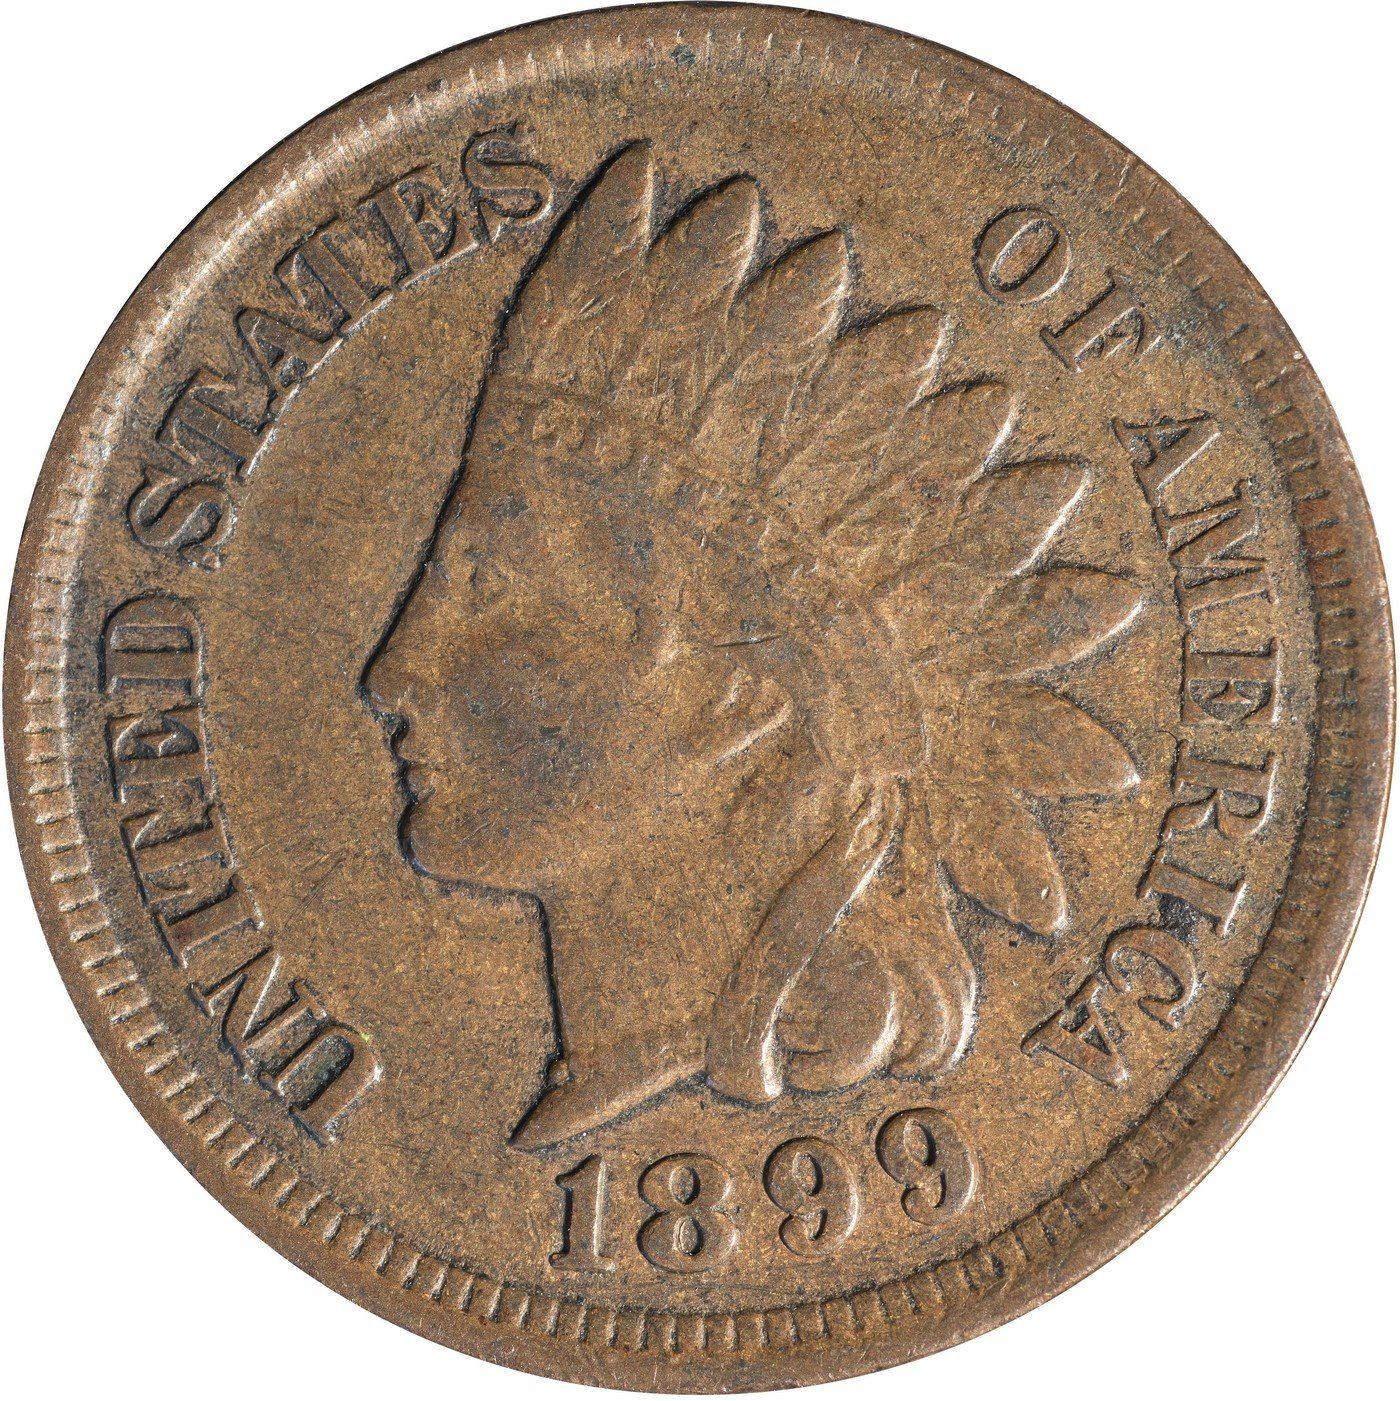 1899 RPD-027 Indian Head Penny - Photo by Kurt Story